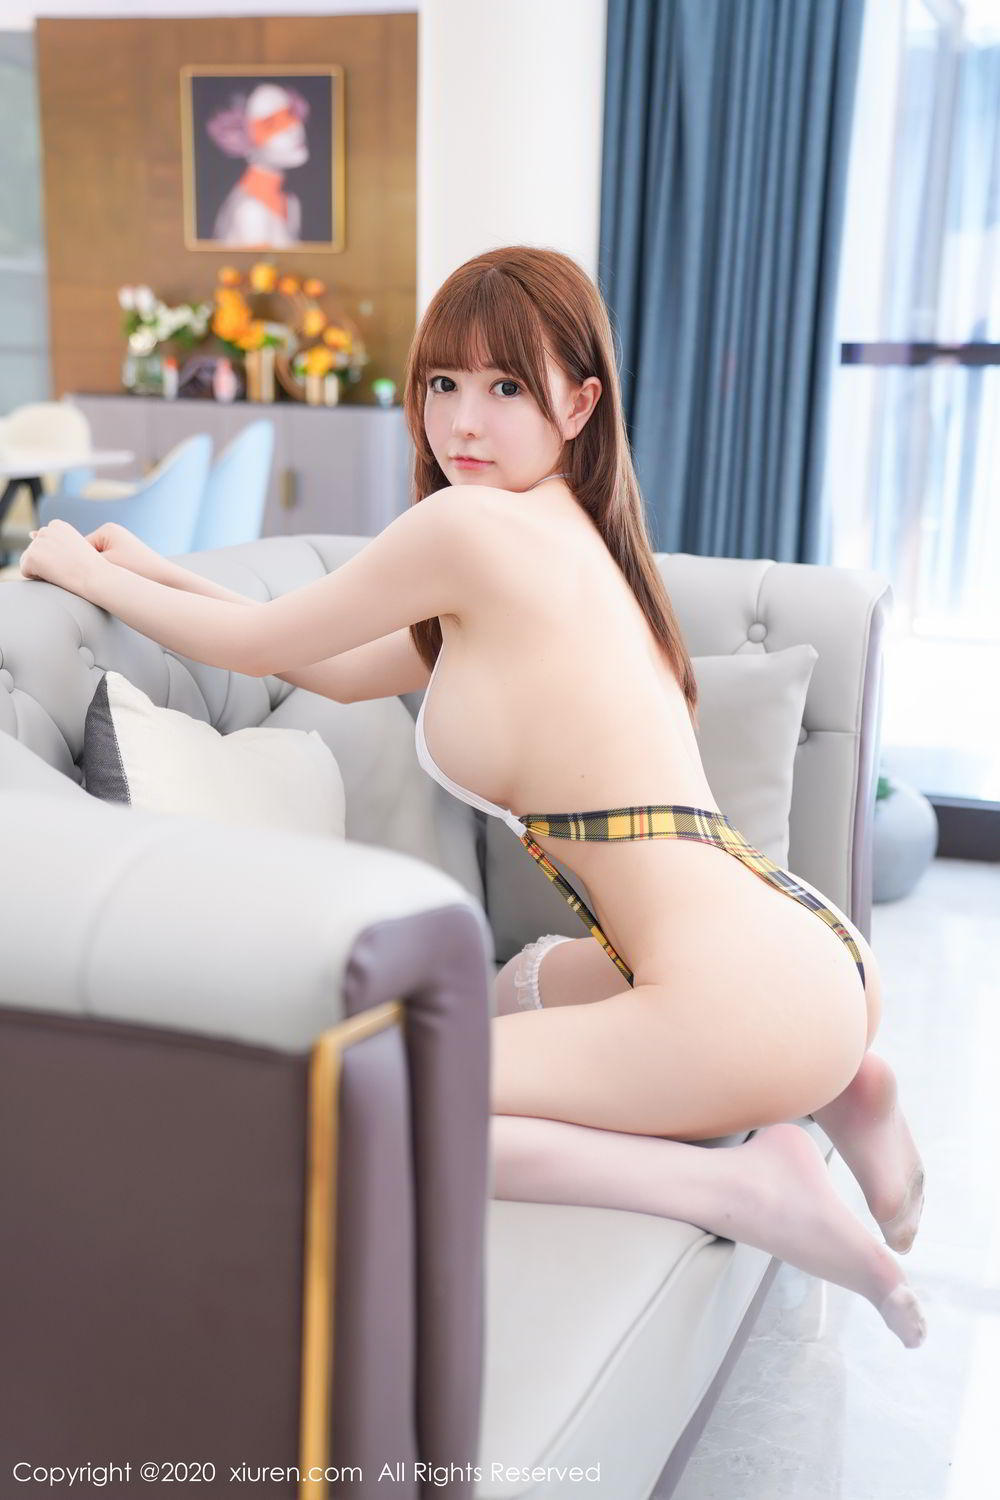 [XiuRen] Vol.2115 Uu Jiang 45P, Baby Face Big Boobs, Cute, UU Jiang, Xiuren